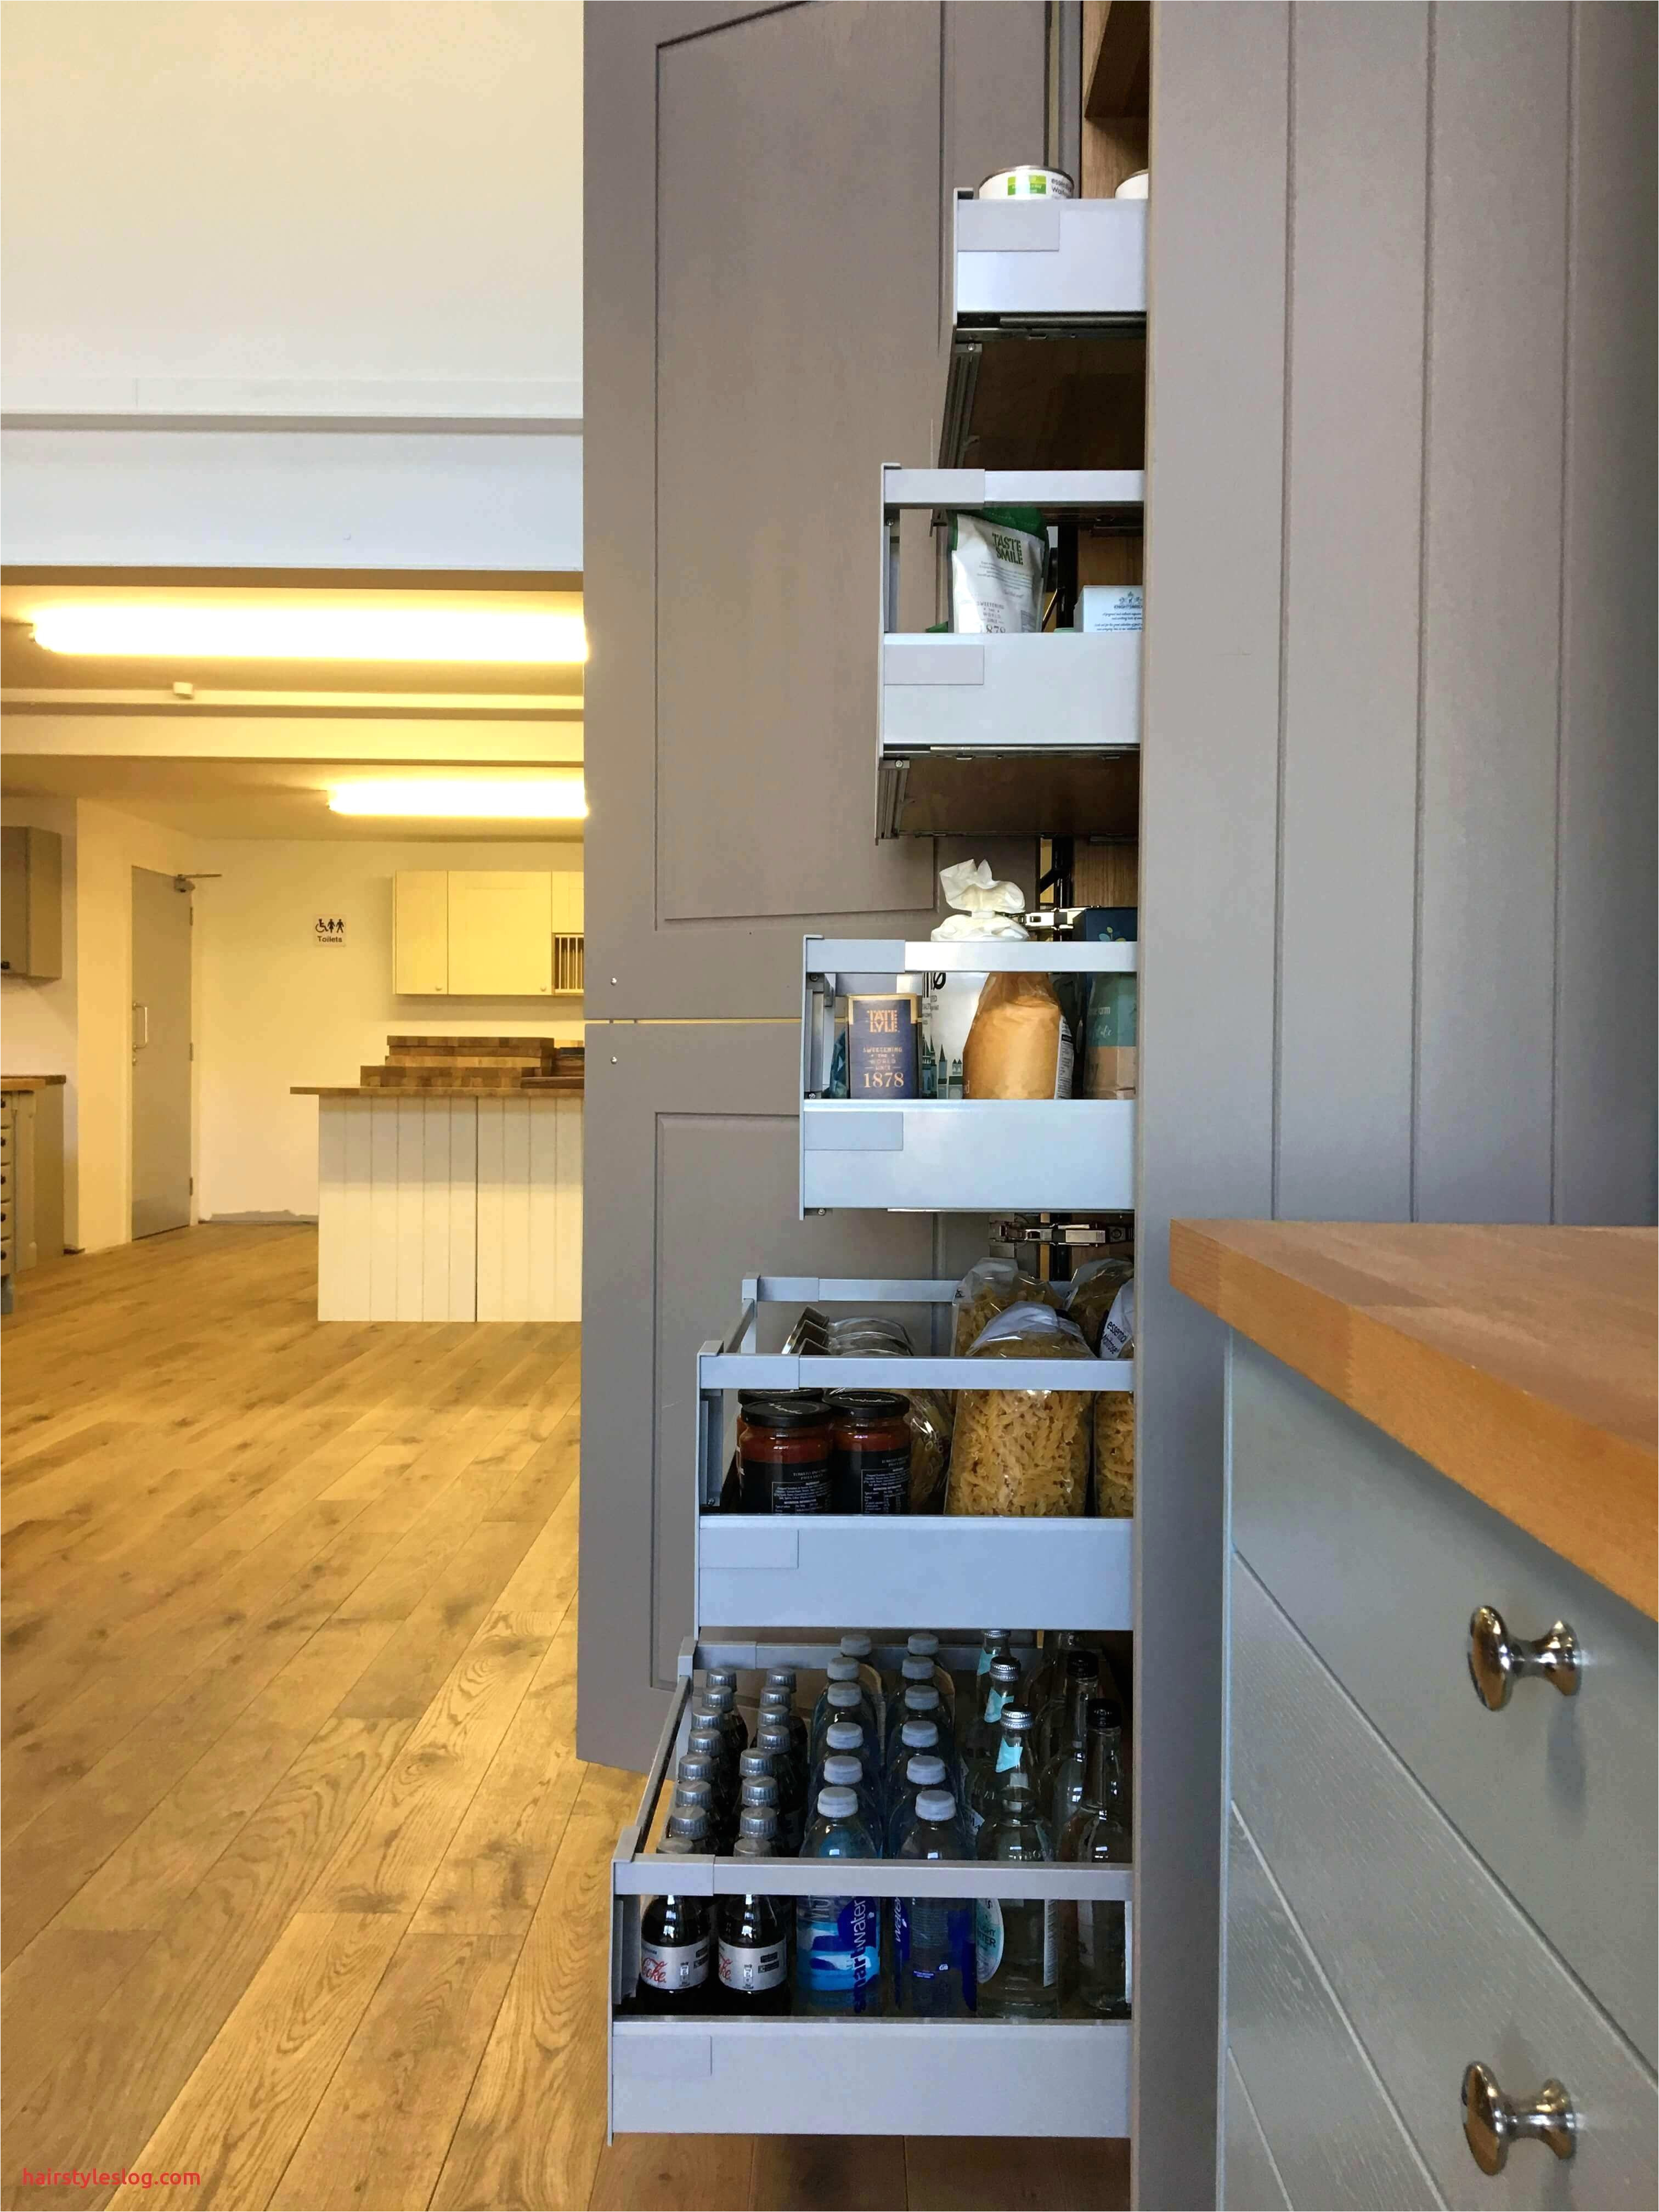 gallery f rainbowinseoul from thomasville kitchen cabinets outlet b image source rainbowinseoul com b